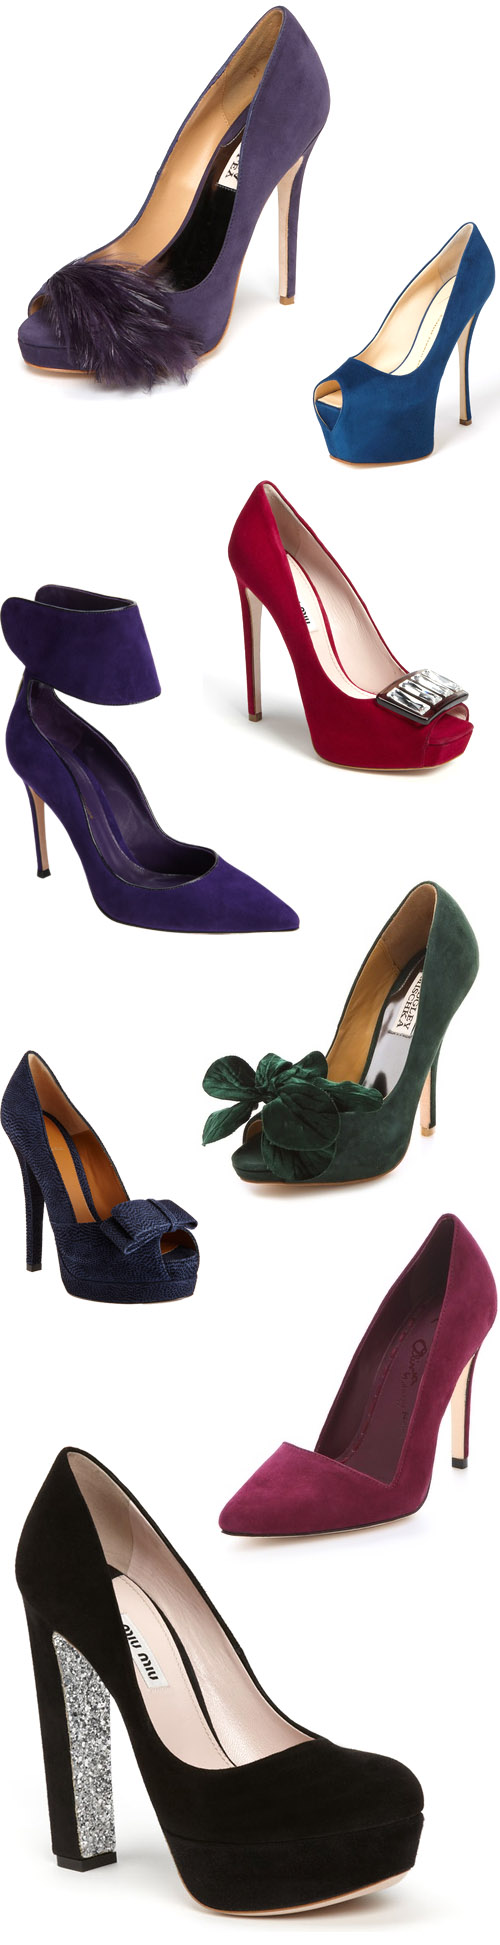 suede wedding shoes for fall and winter via junebugweddings.com